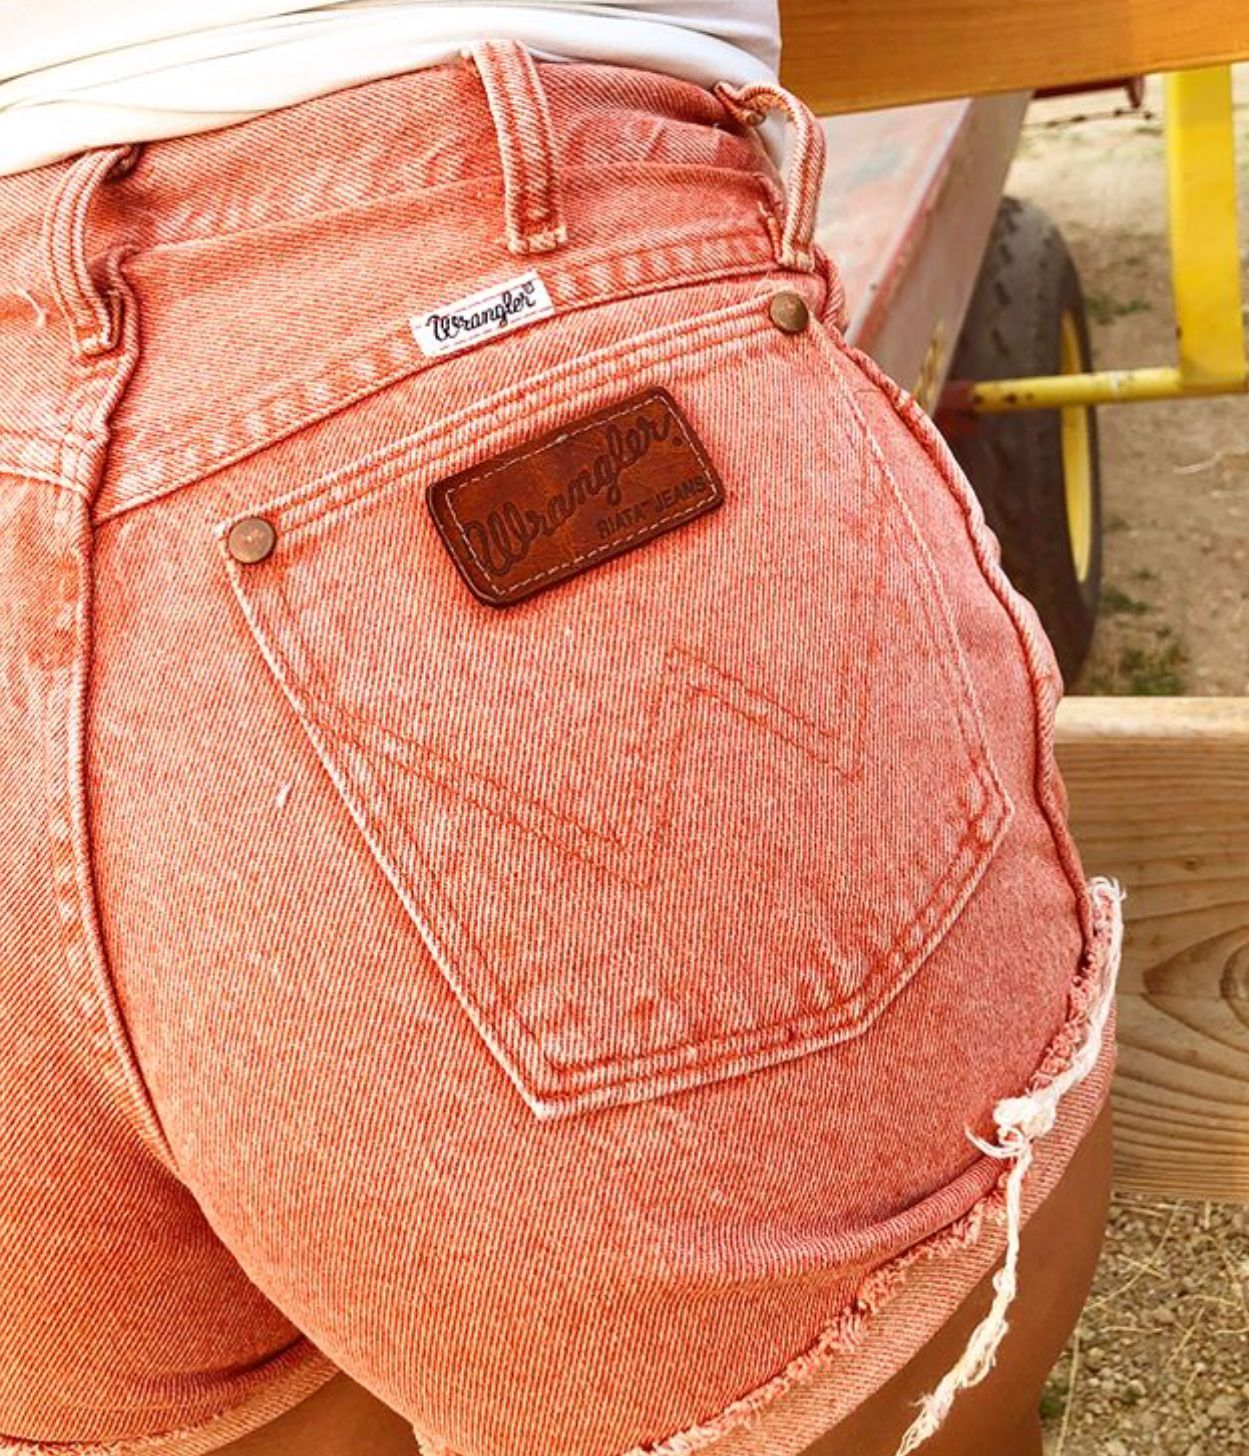 Vintage Western Fashion & Denim #summerwardrobe Rare Pink Wrangler Cut Offs